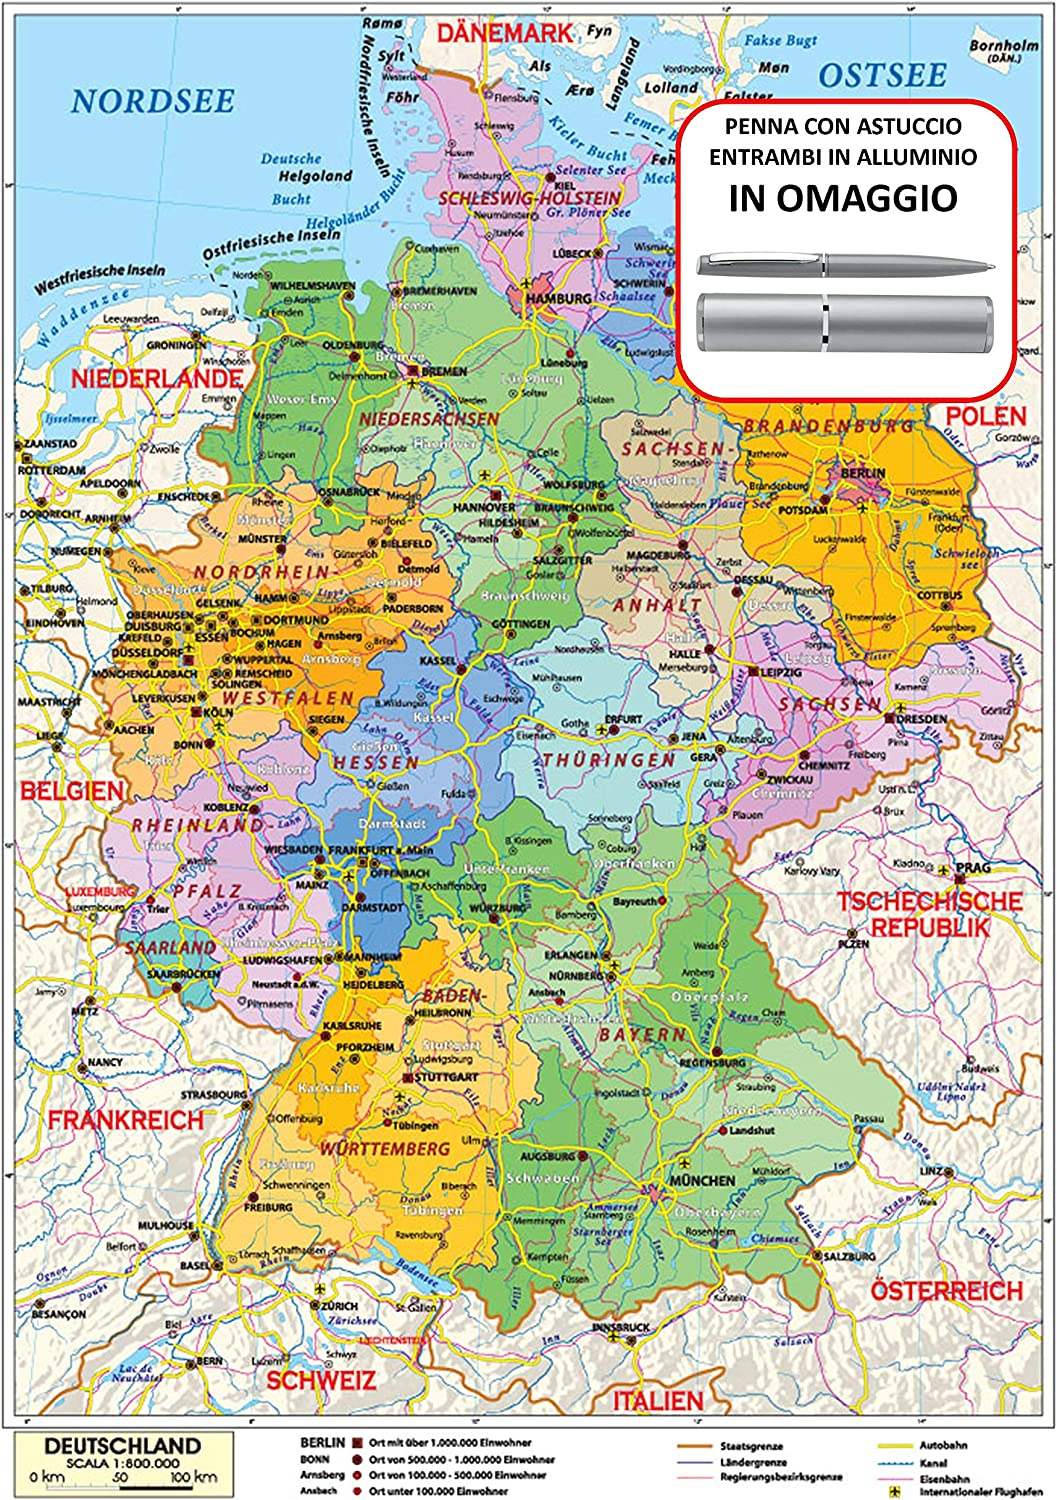 Germania Cartina Muta.Fieno Brina Solletico Cartina Dusseldorf Germania Amazon Settimanaciclisticalombarda It